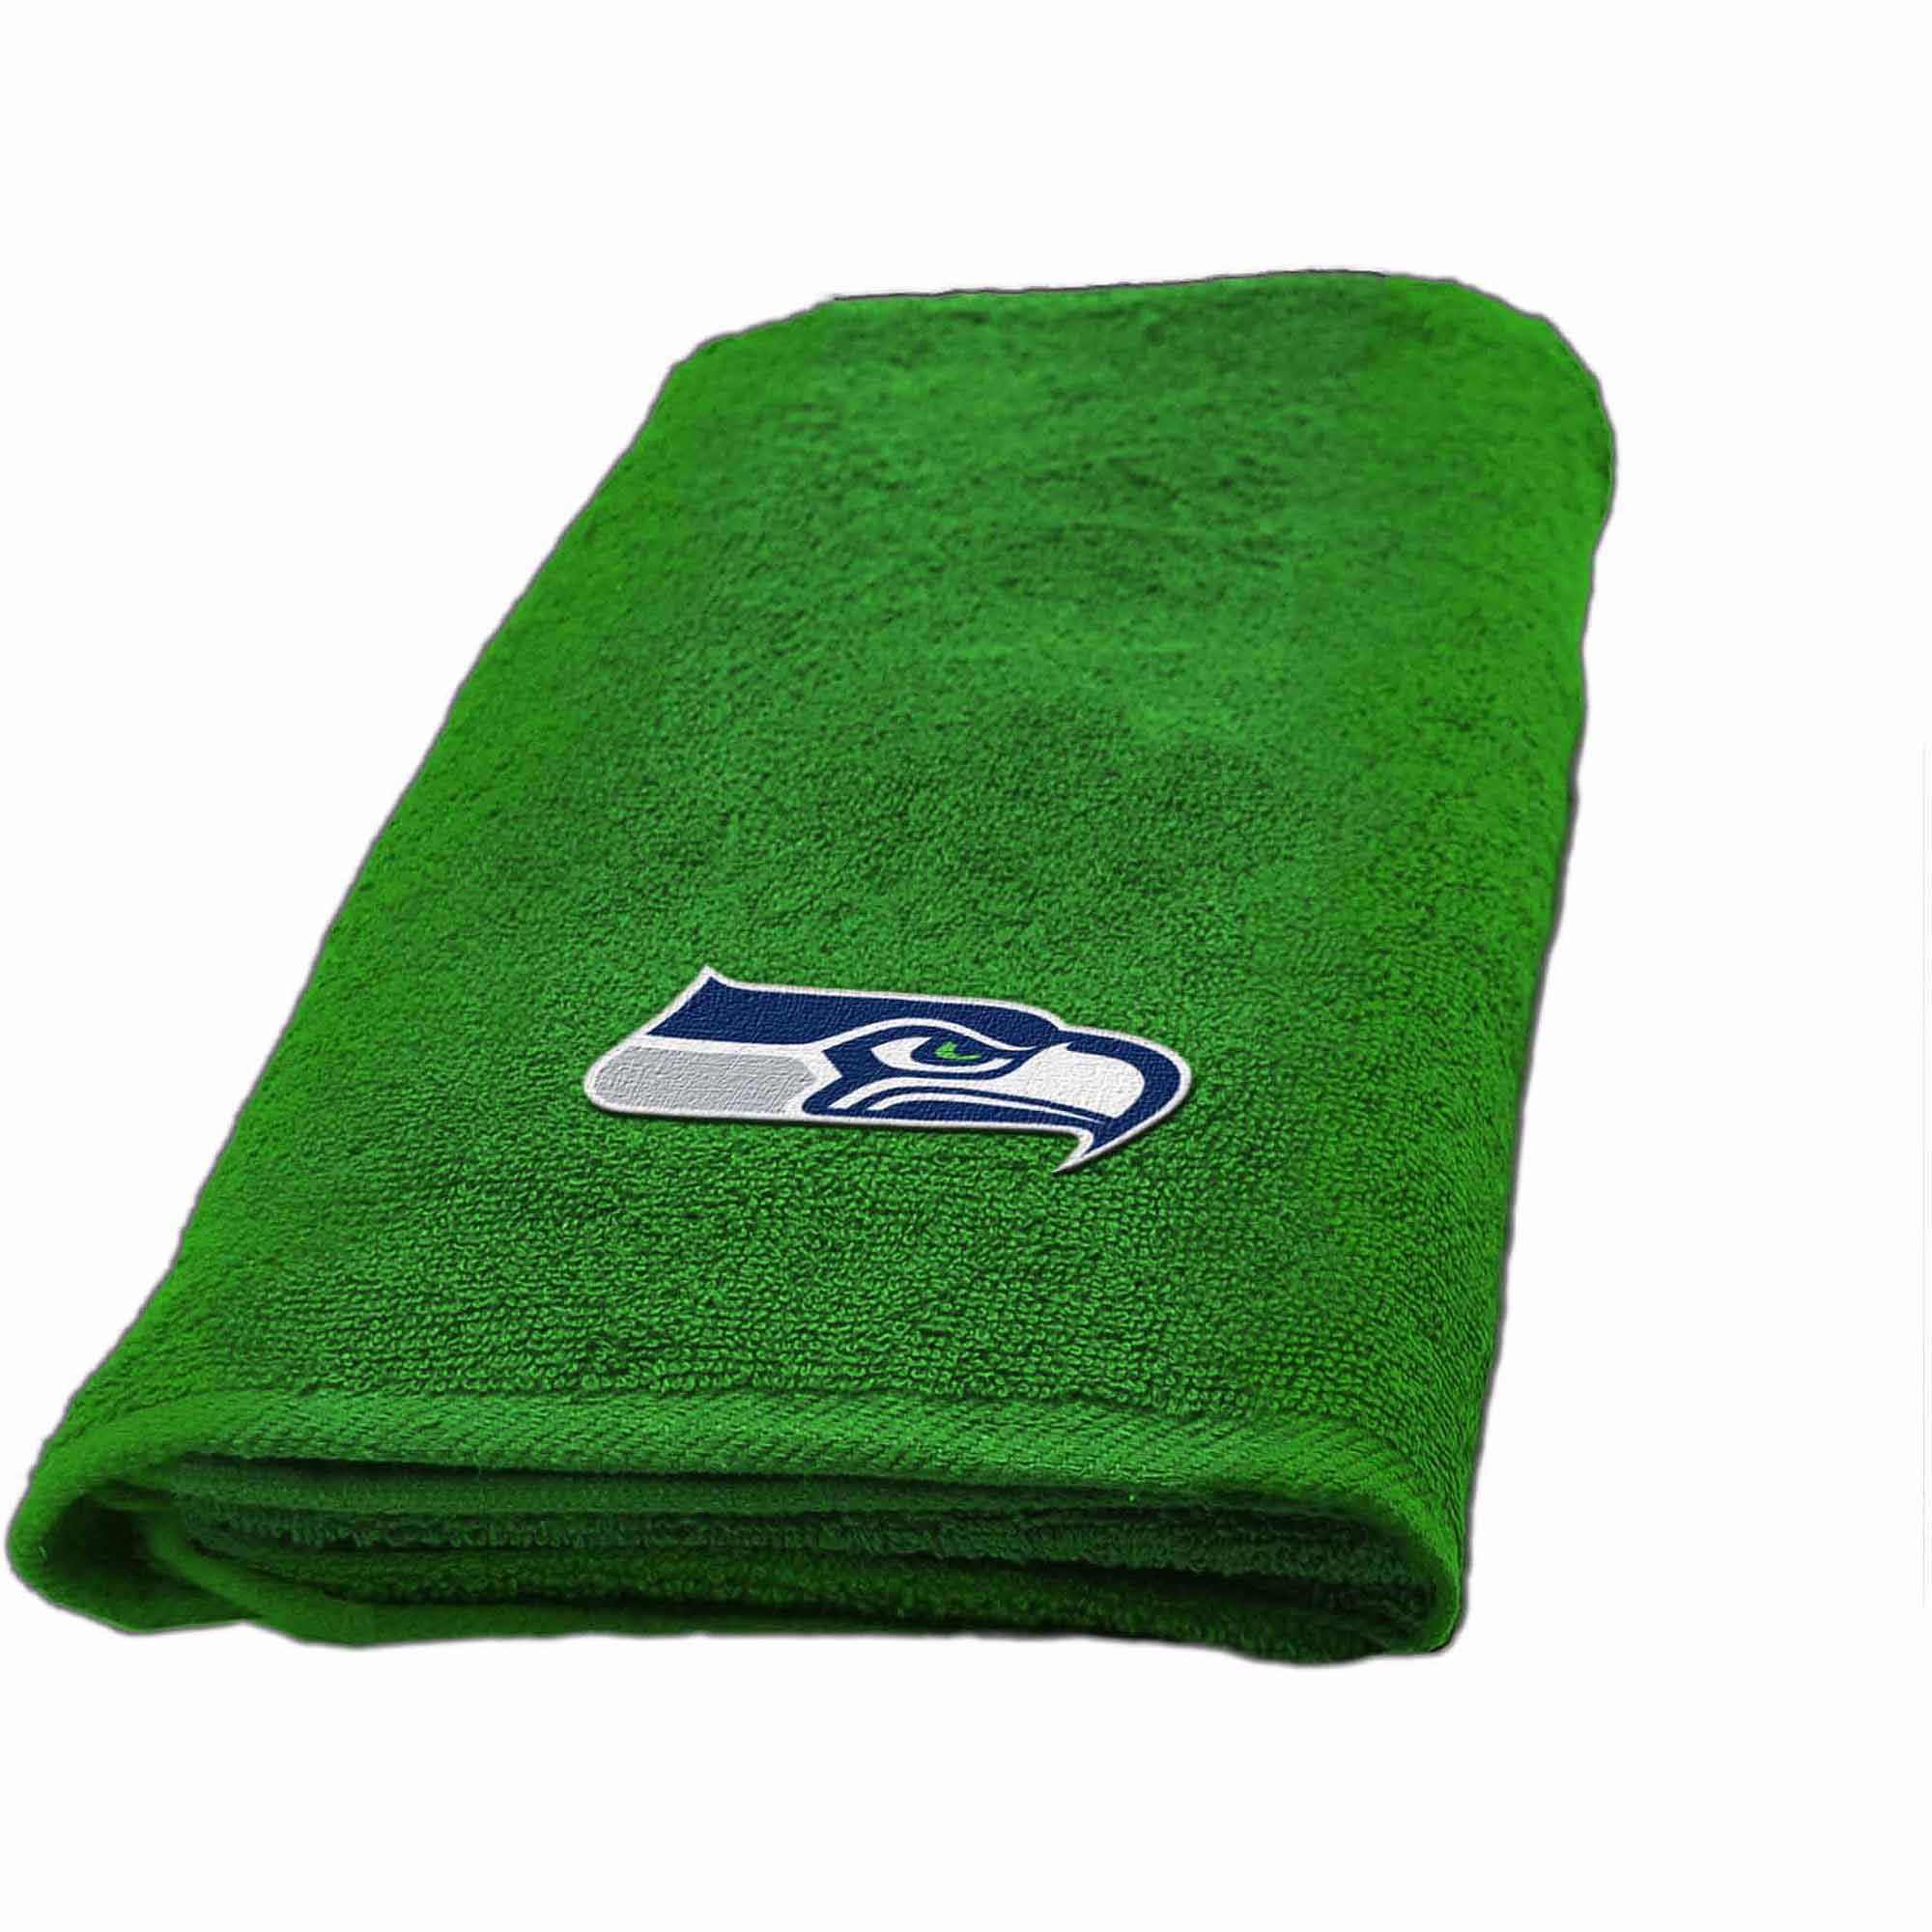 NFL Seattle Seahawks Hand Towel